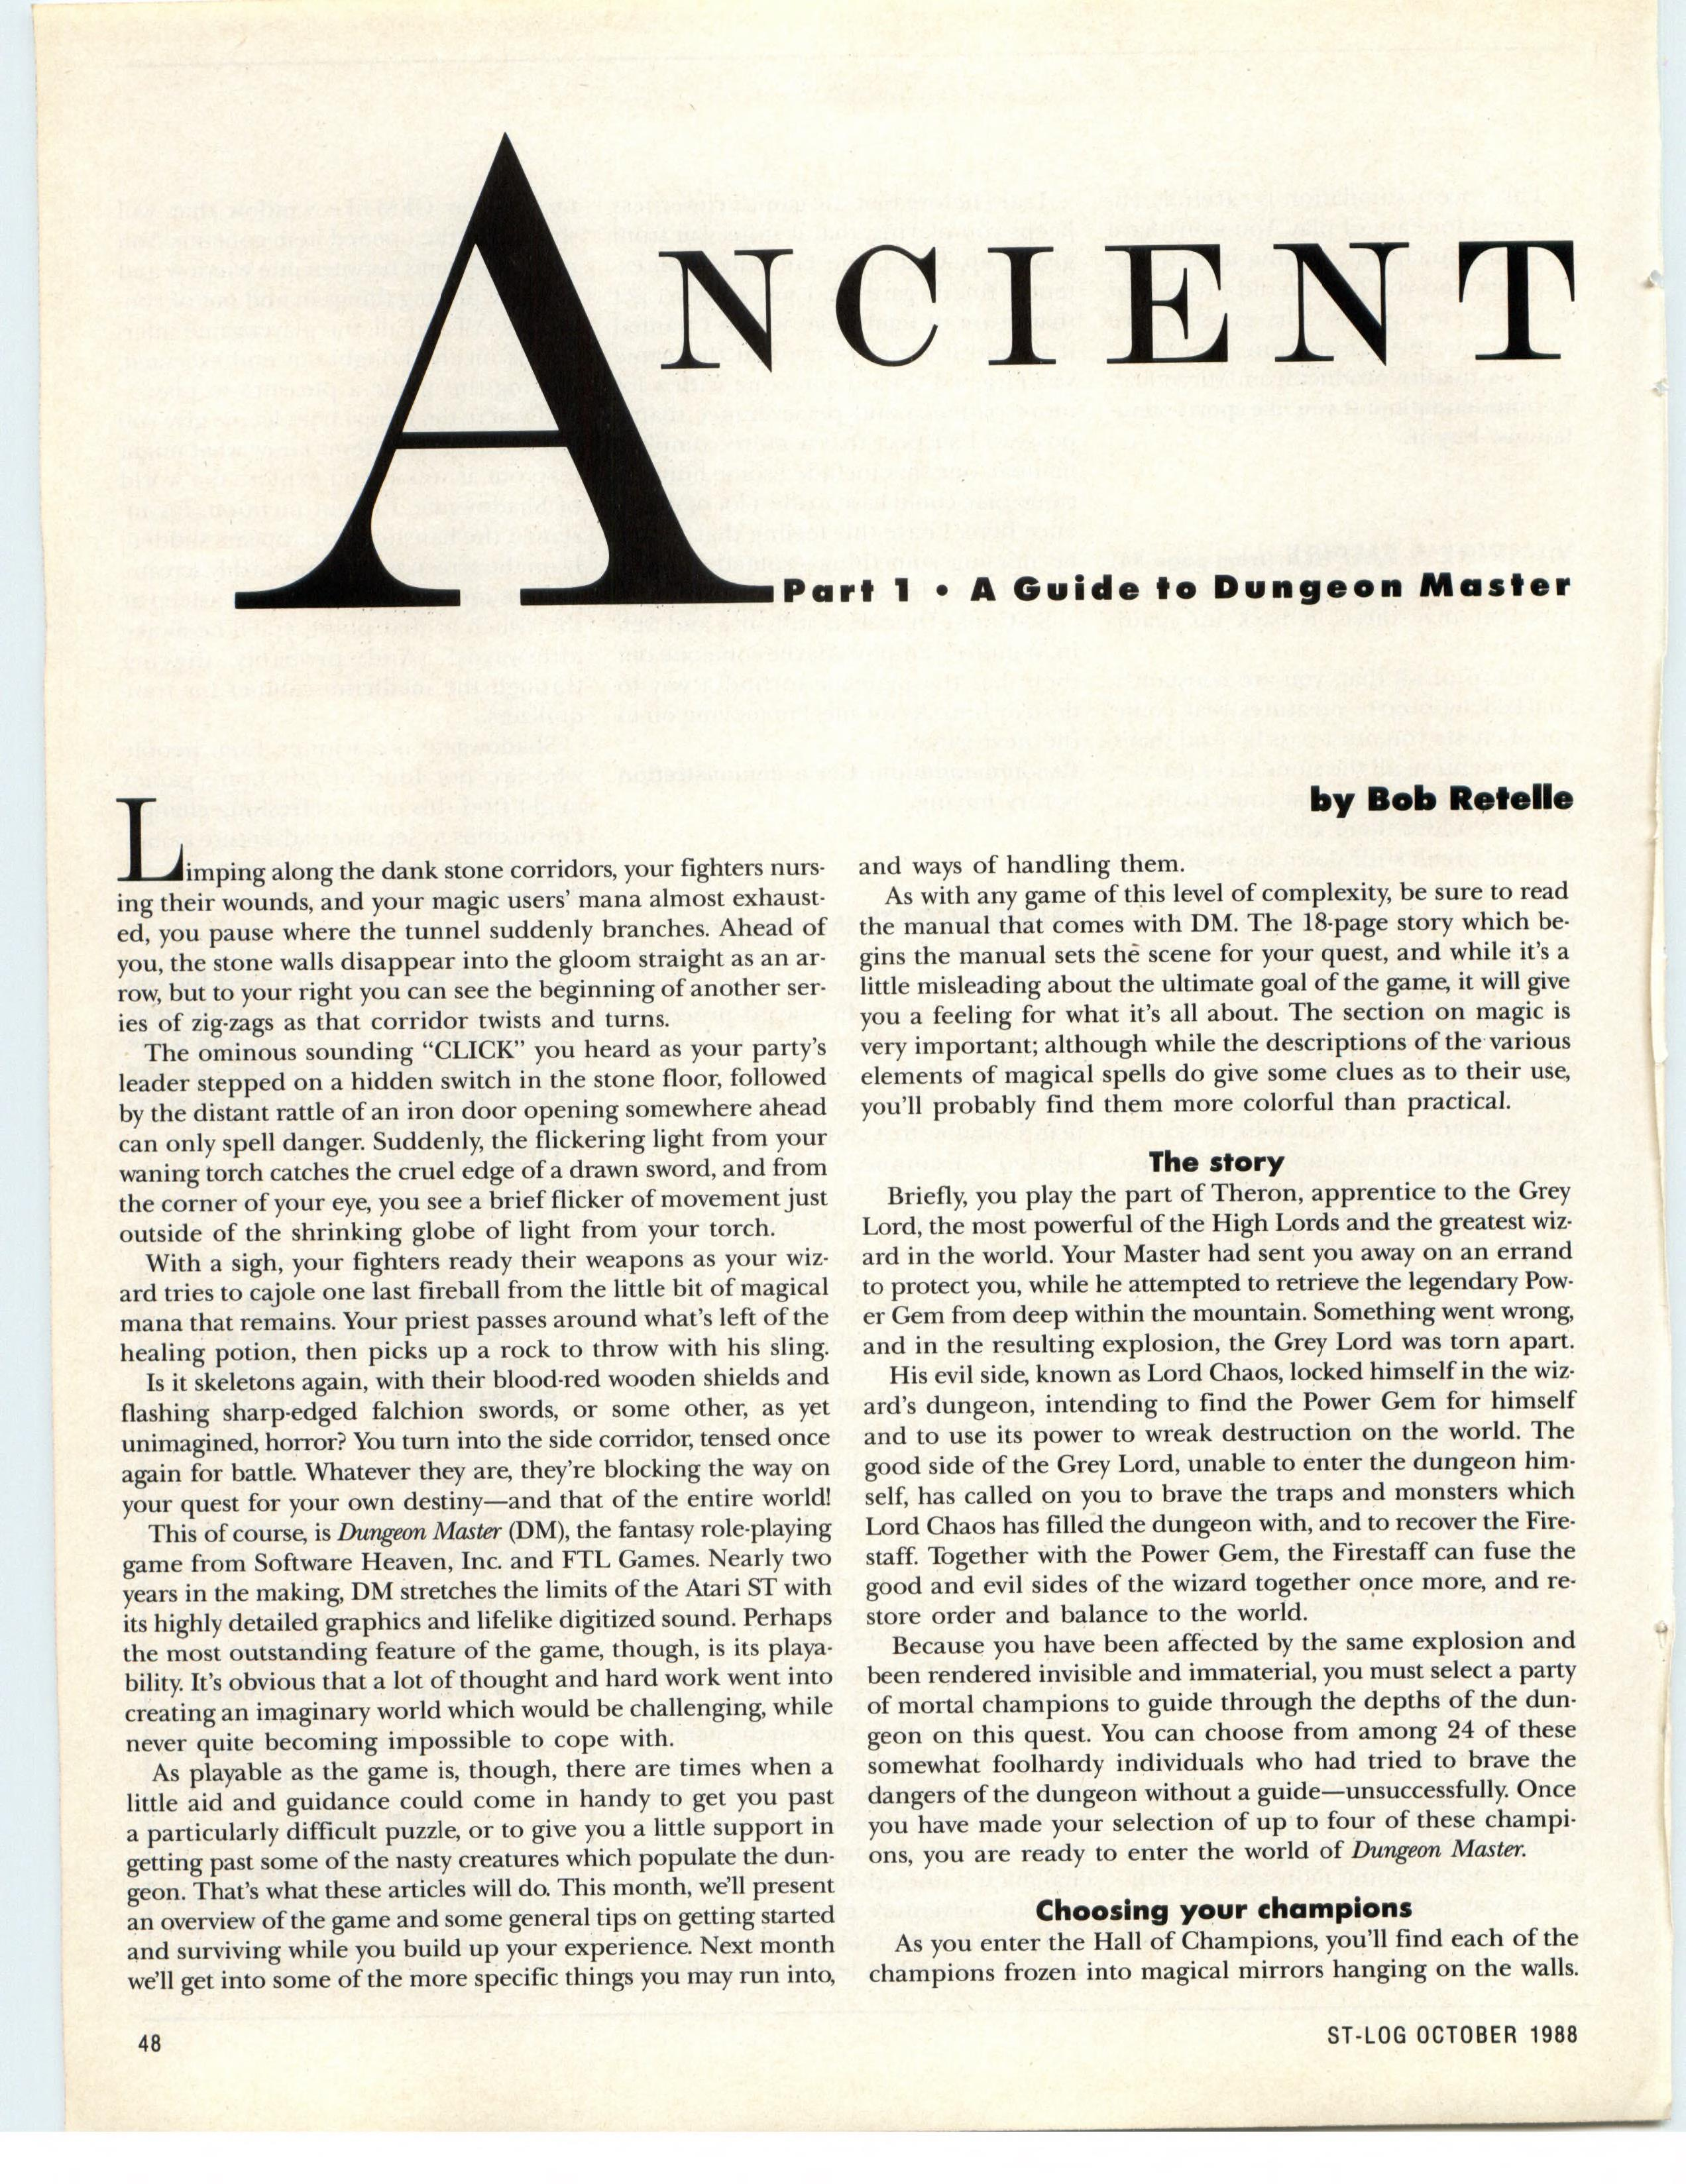 Dungeon Master for Atari ST Guide published in American magazine 'ST-Log', Issue #24 October 1988, Page 48